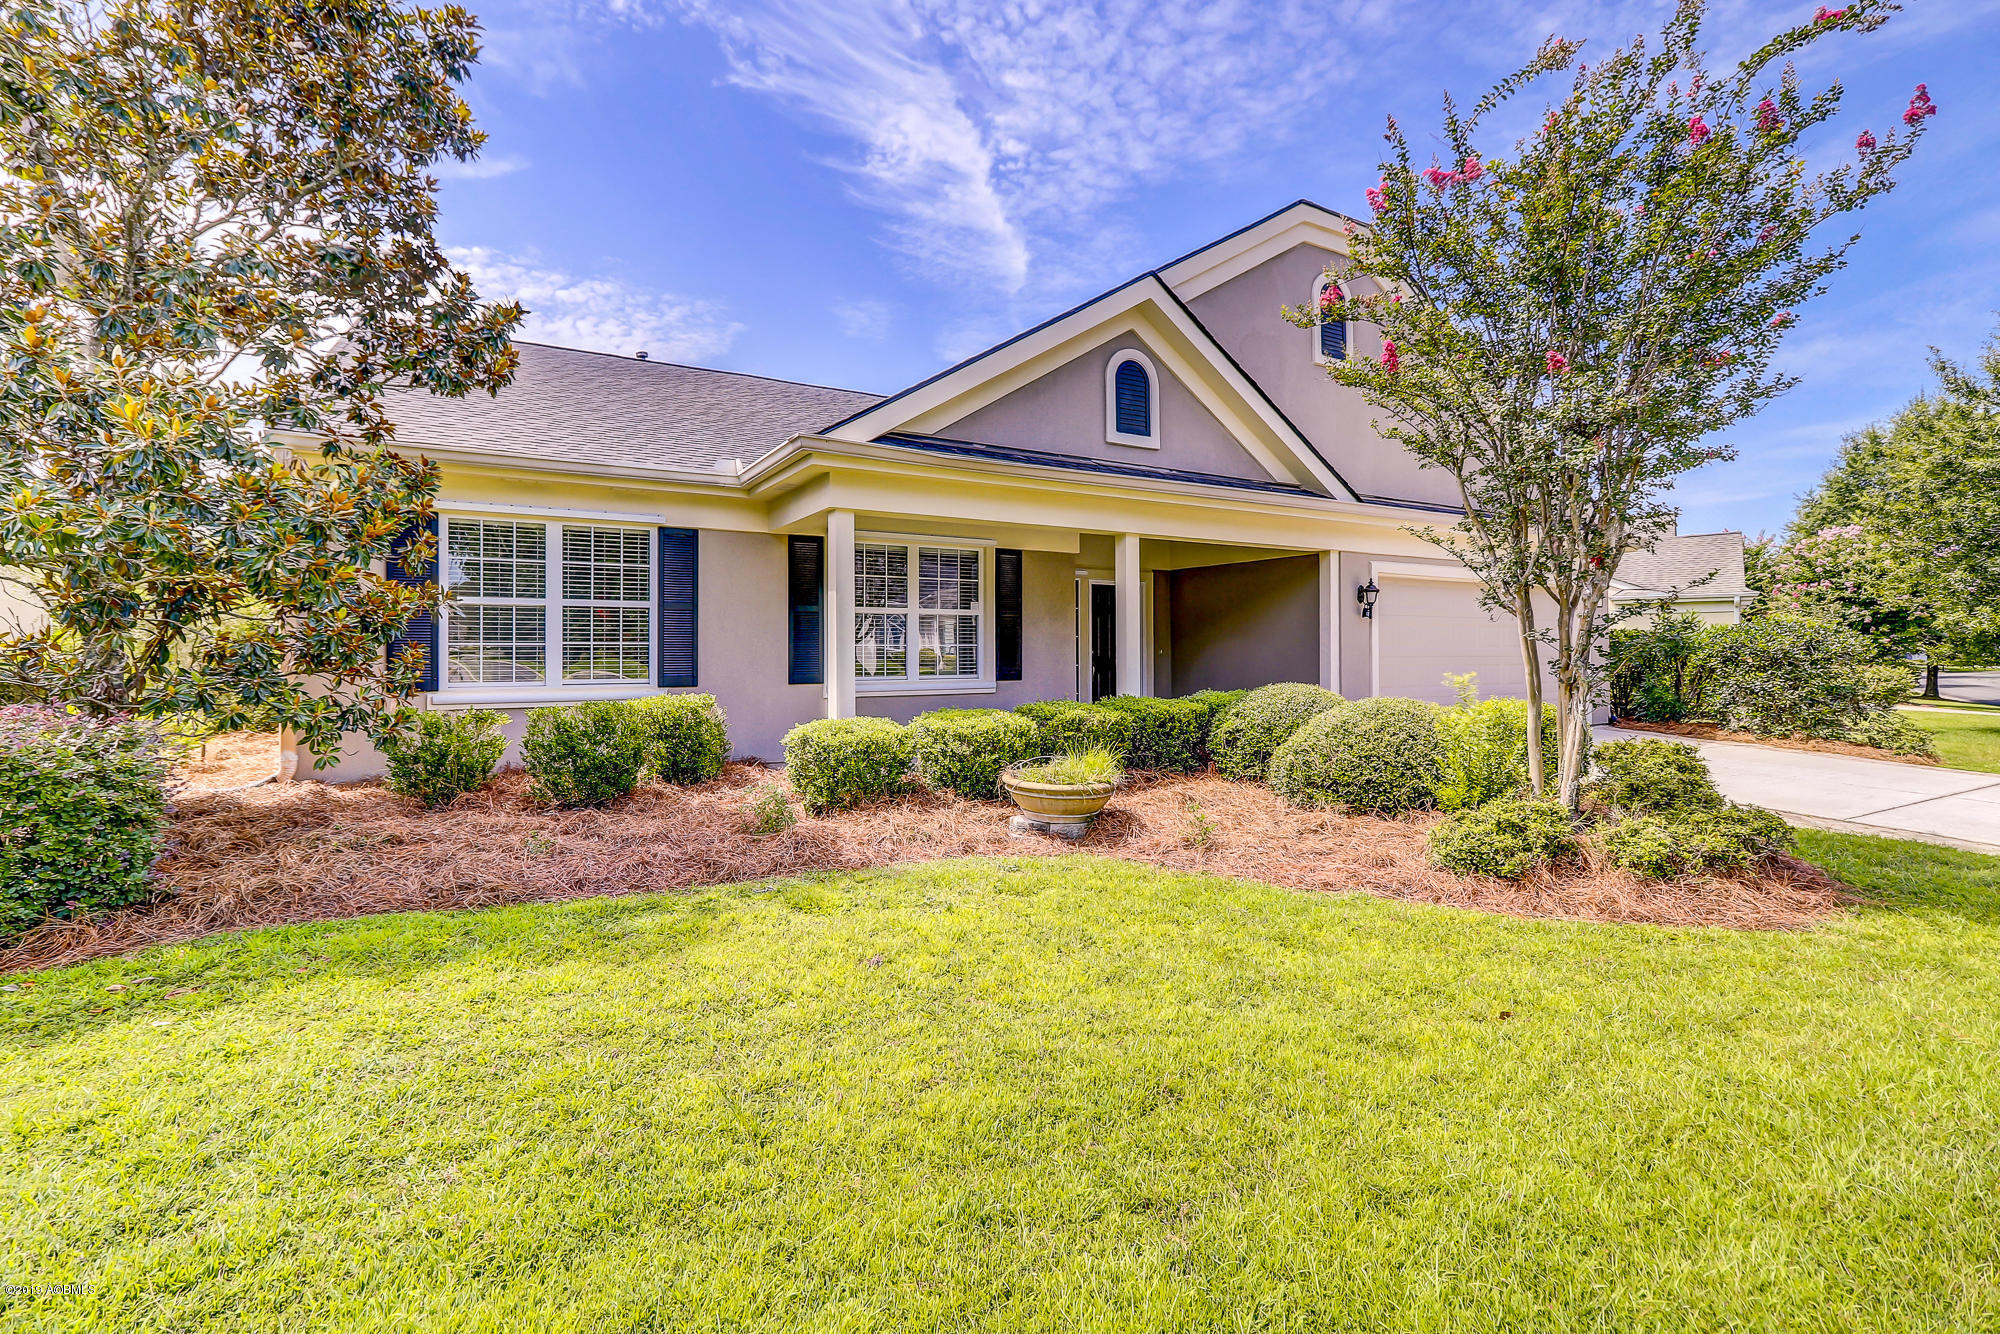 Photo of 31 Redtail Drive, Bluffton, SC 29909